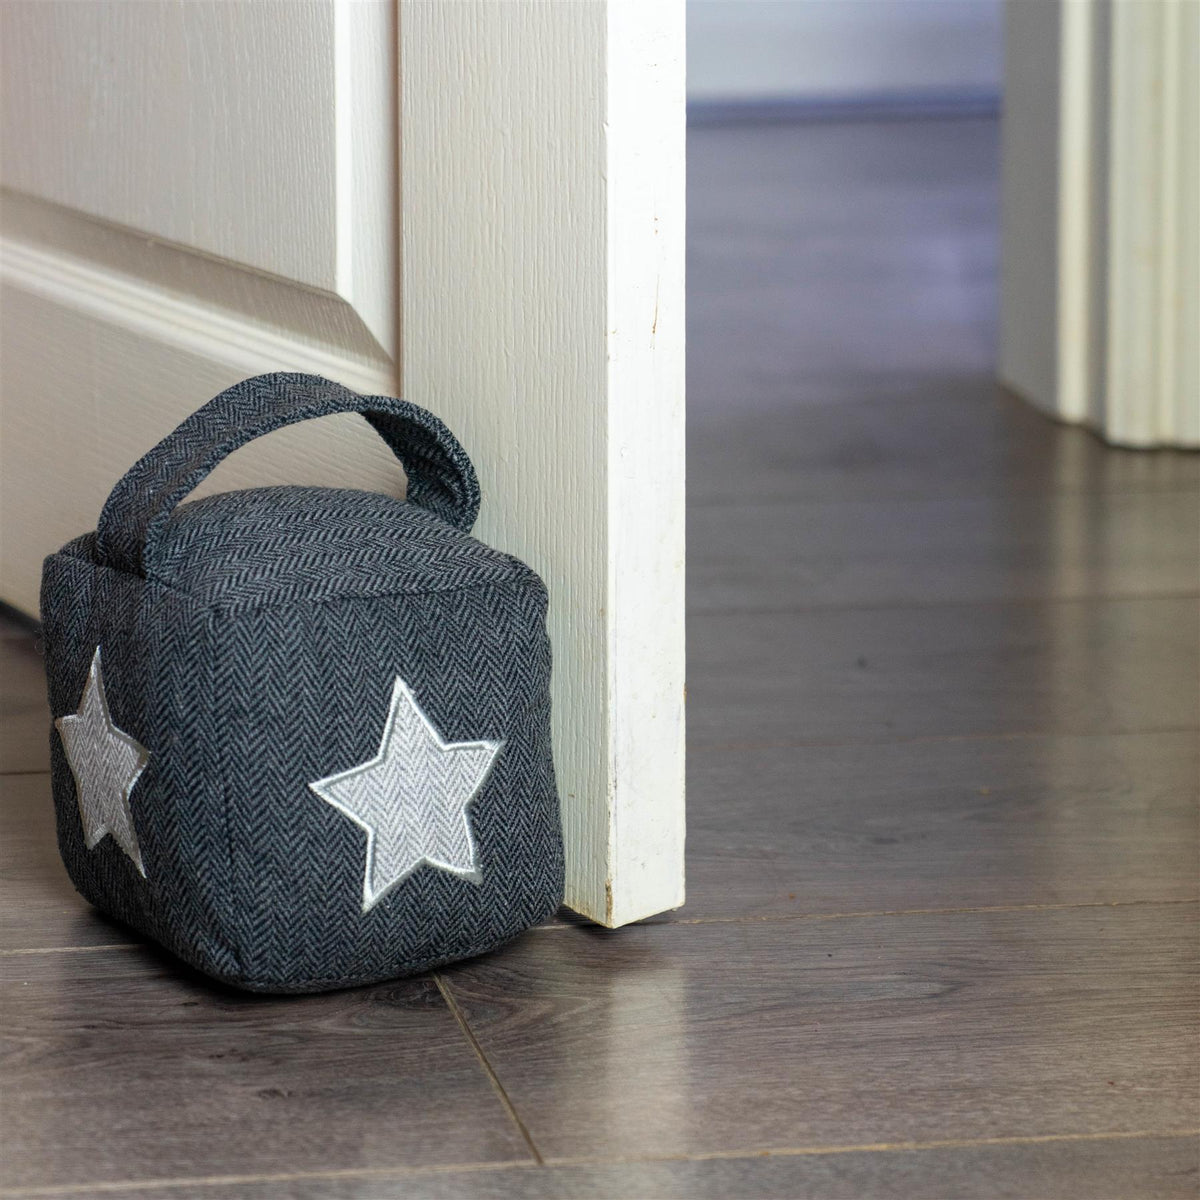 Nicola Spring Fabric Door Stop Star Grey Interior Door